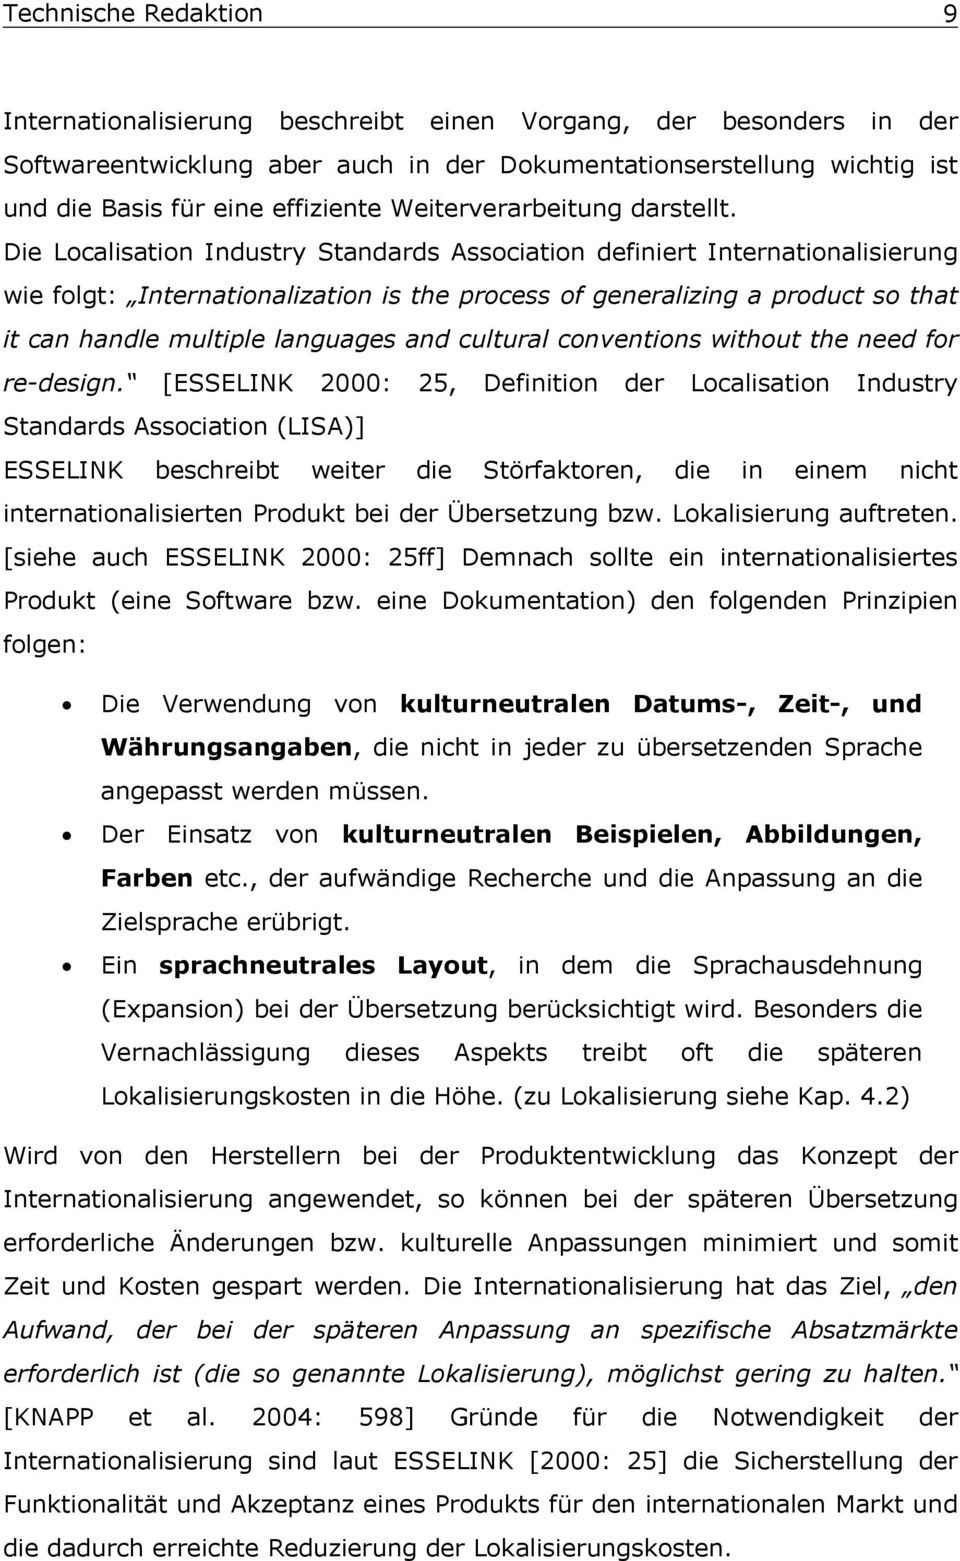 Die Localisation Industry Standards Association definiert Internationalisierung wie folgt: Internationalization is the process of generalizing a product so that it can handle multiple languages and